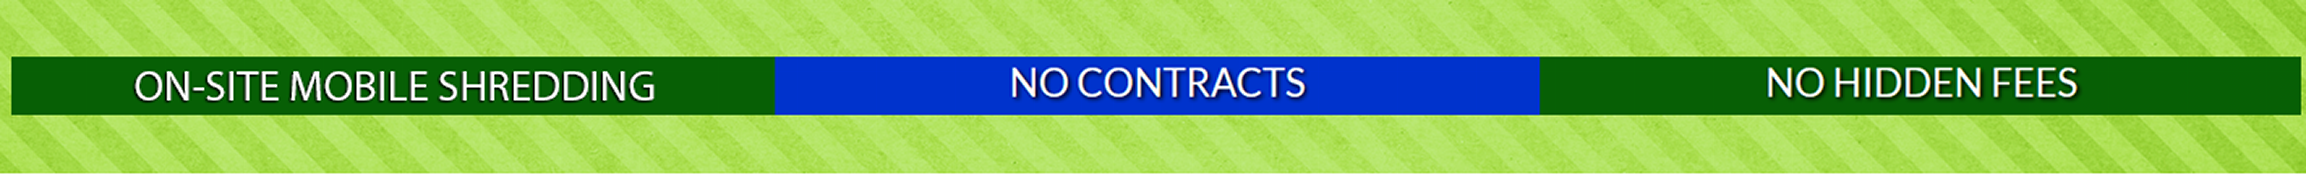 No Contracts / No Hidden Fees